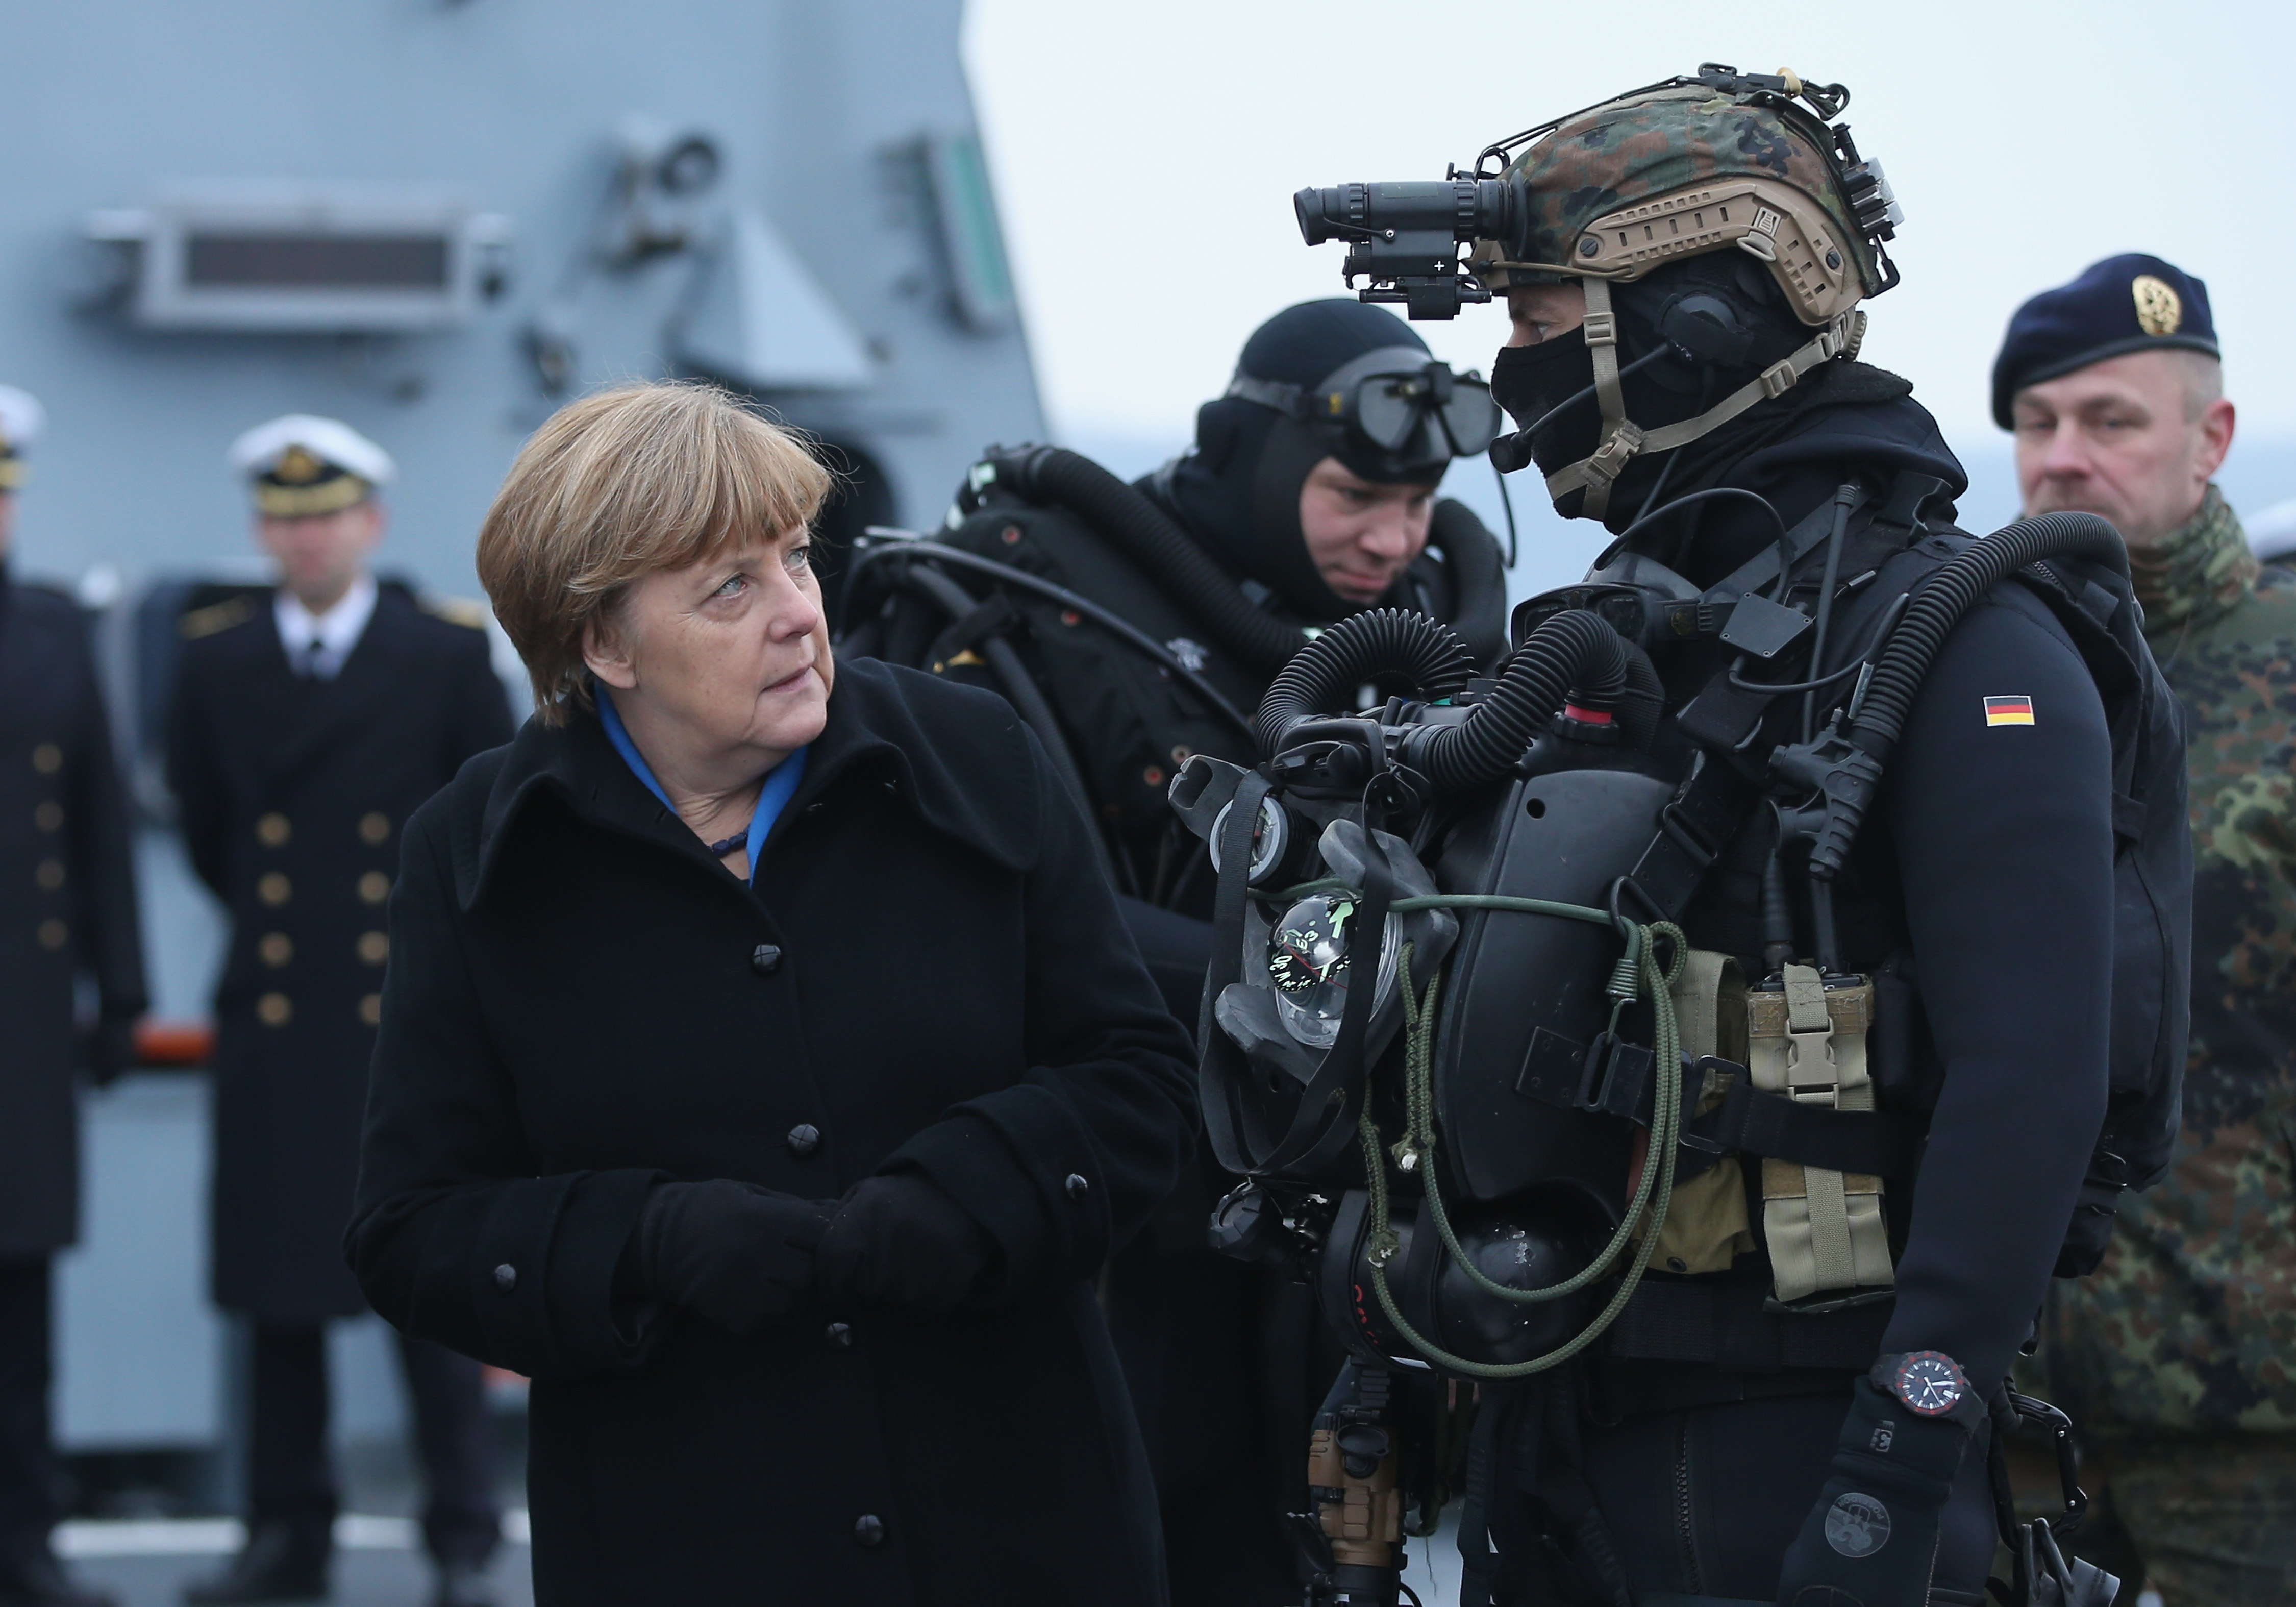 German Chancellor Angela Merkel inspects a member of the German Navy's Special Forces divers' unit while she visited the